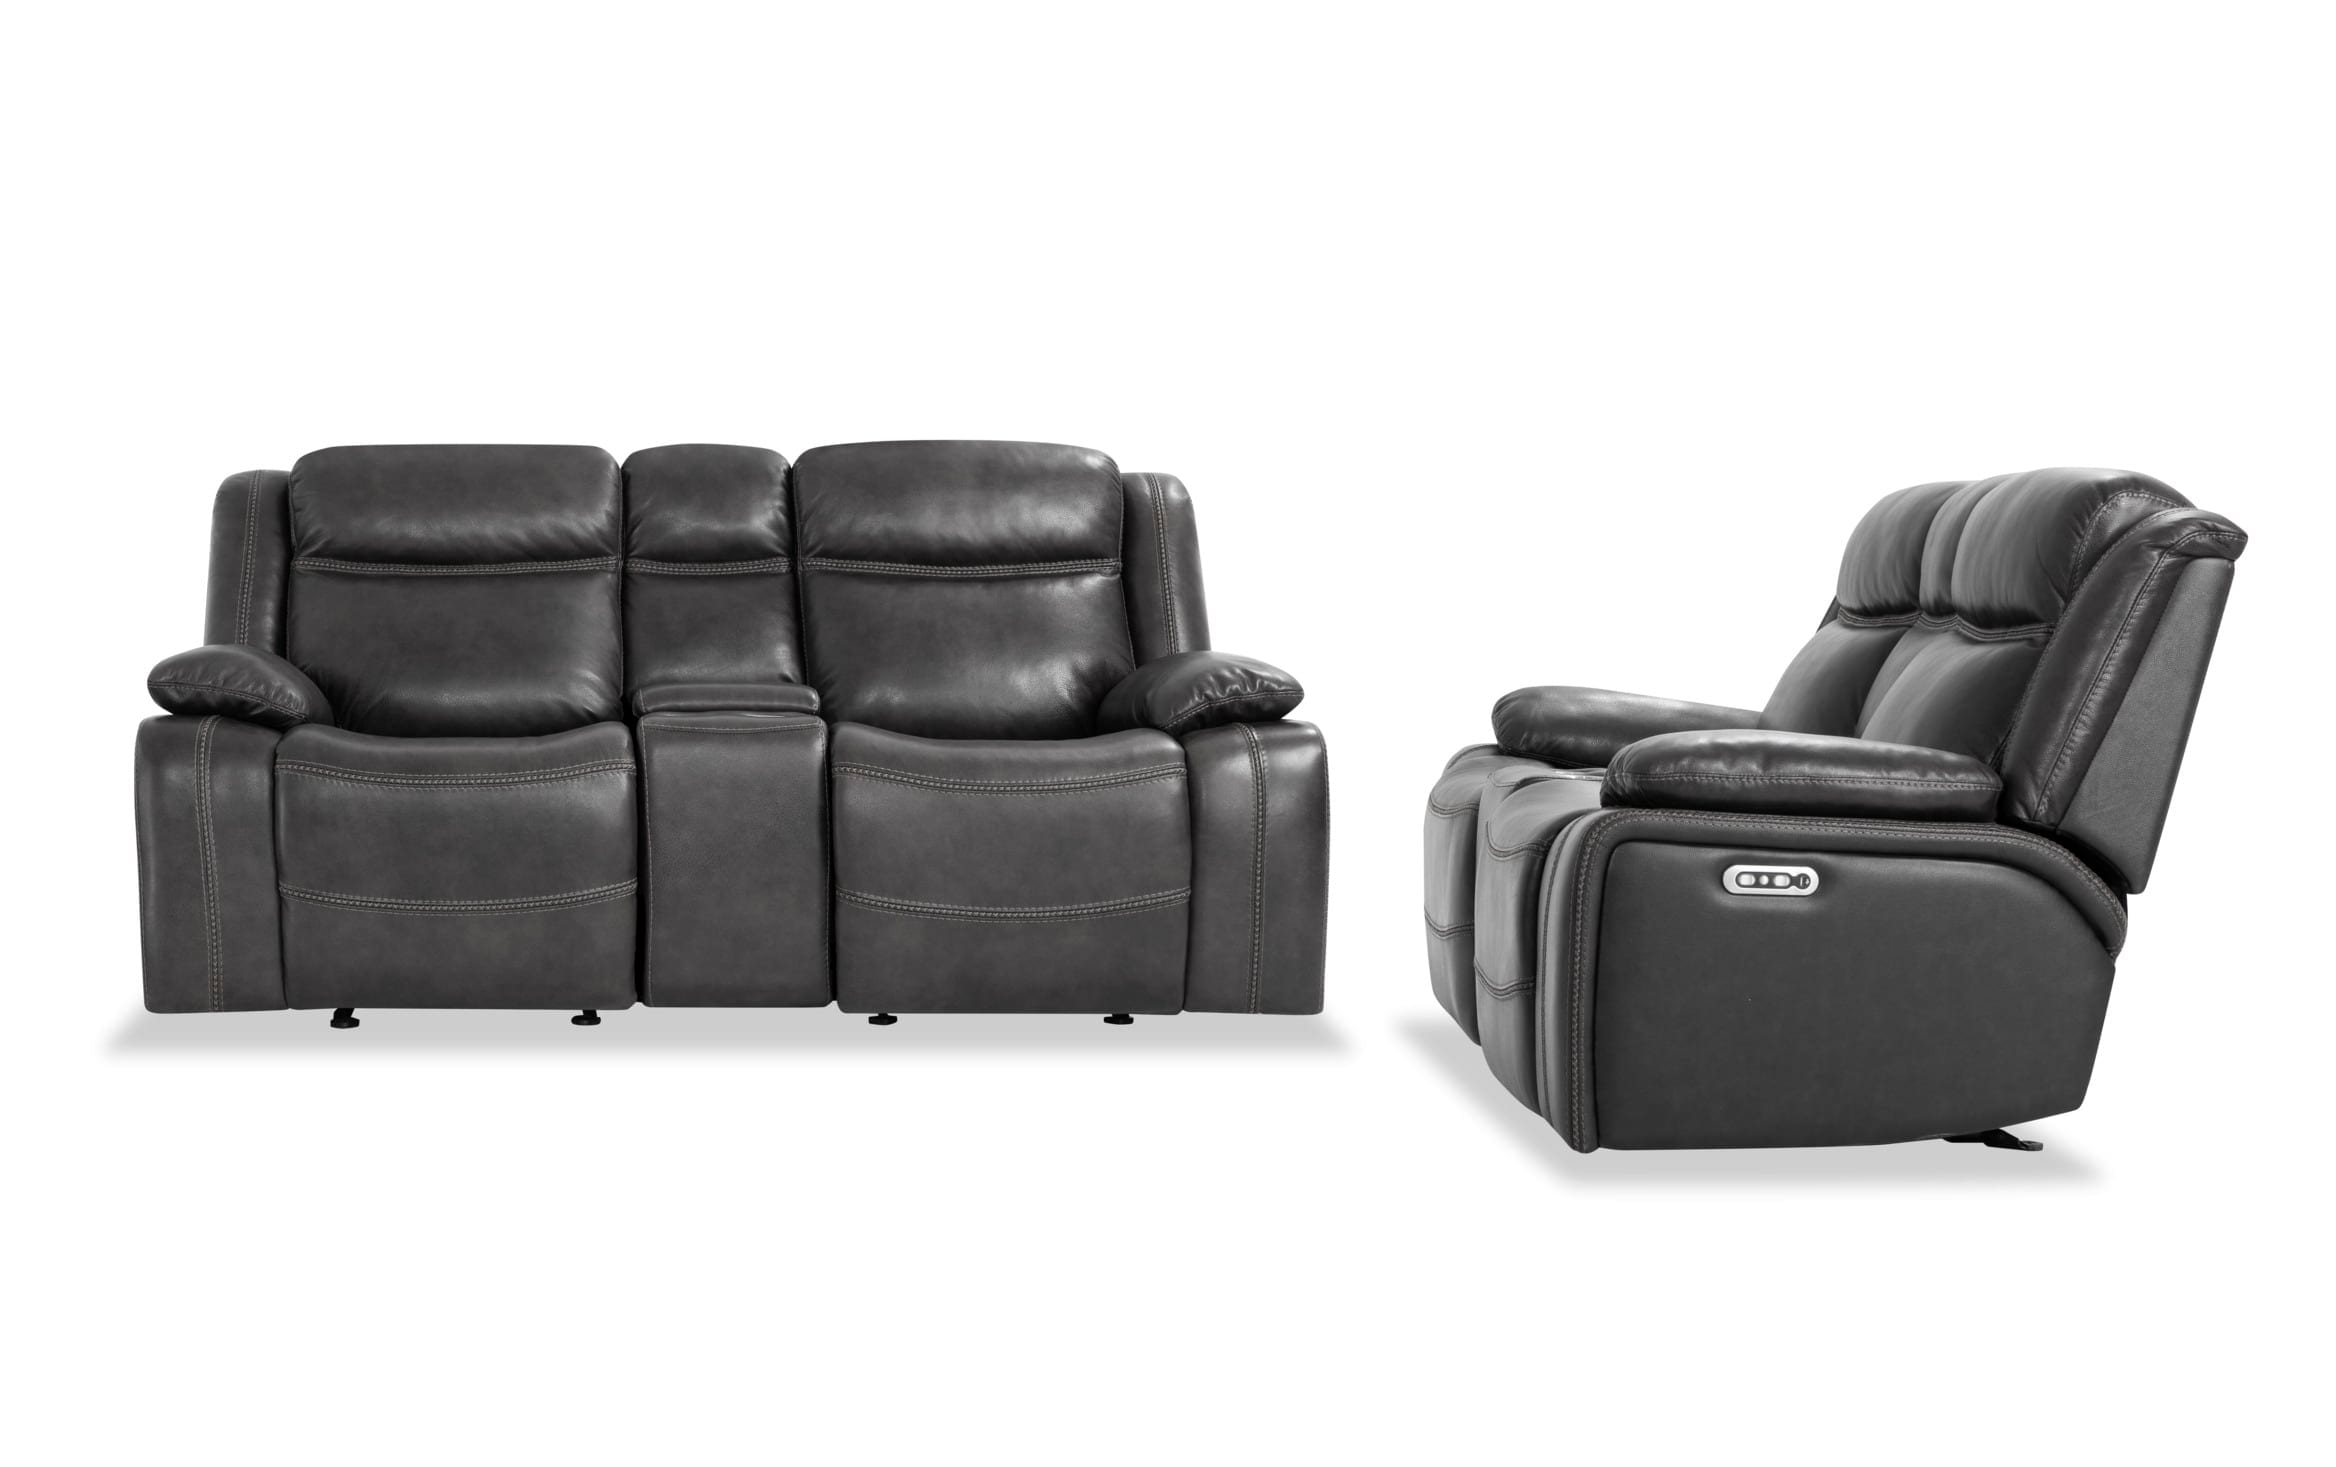 Picture of: Trailblazer Gray Leather Power Reclining Console Loveseat Set Bobs Com